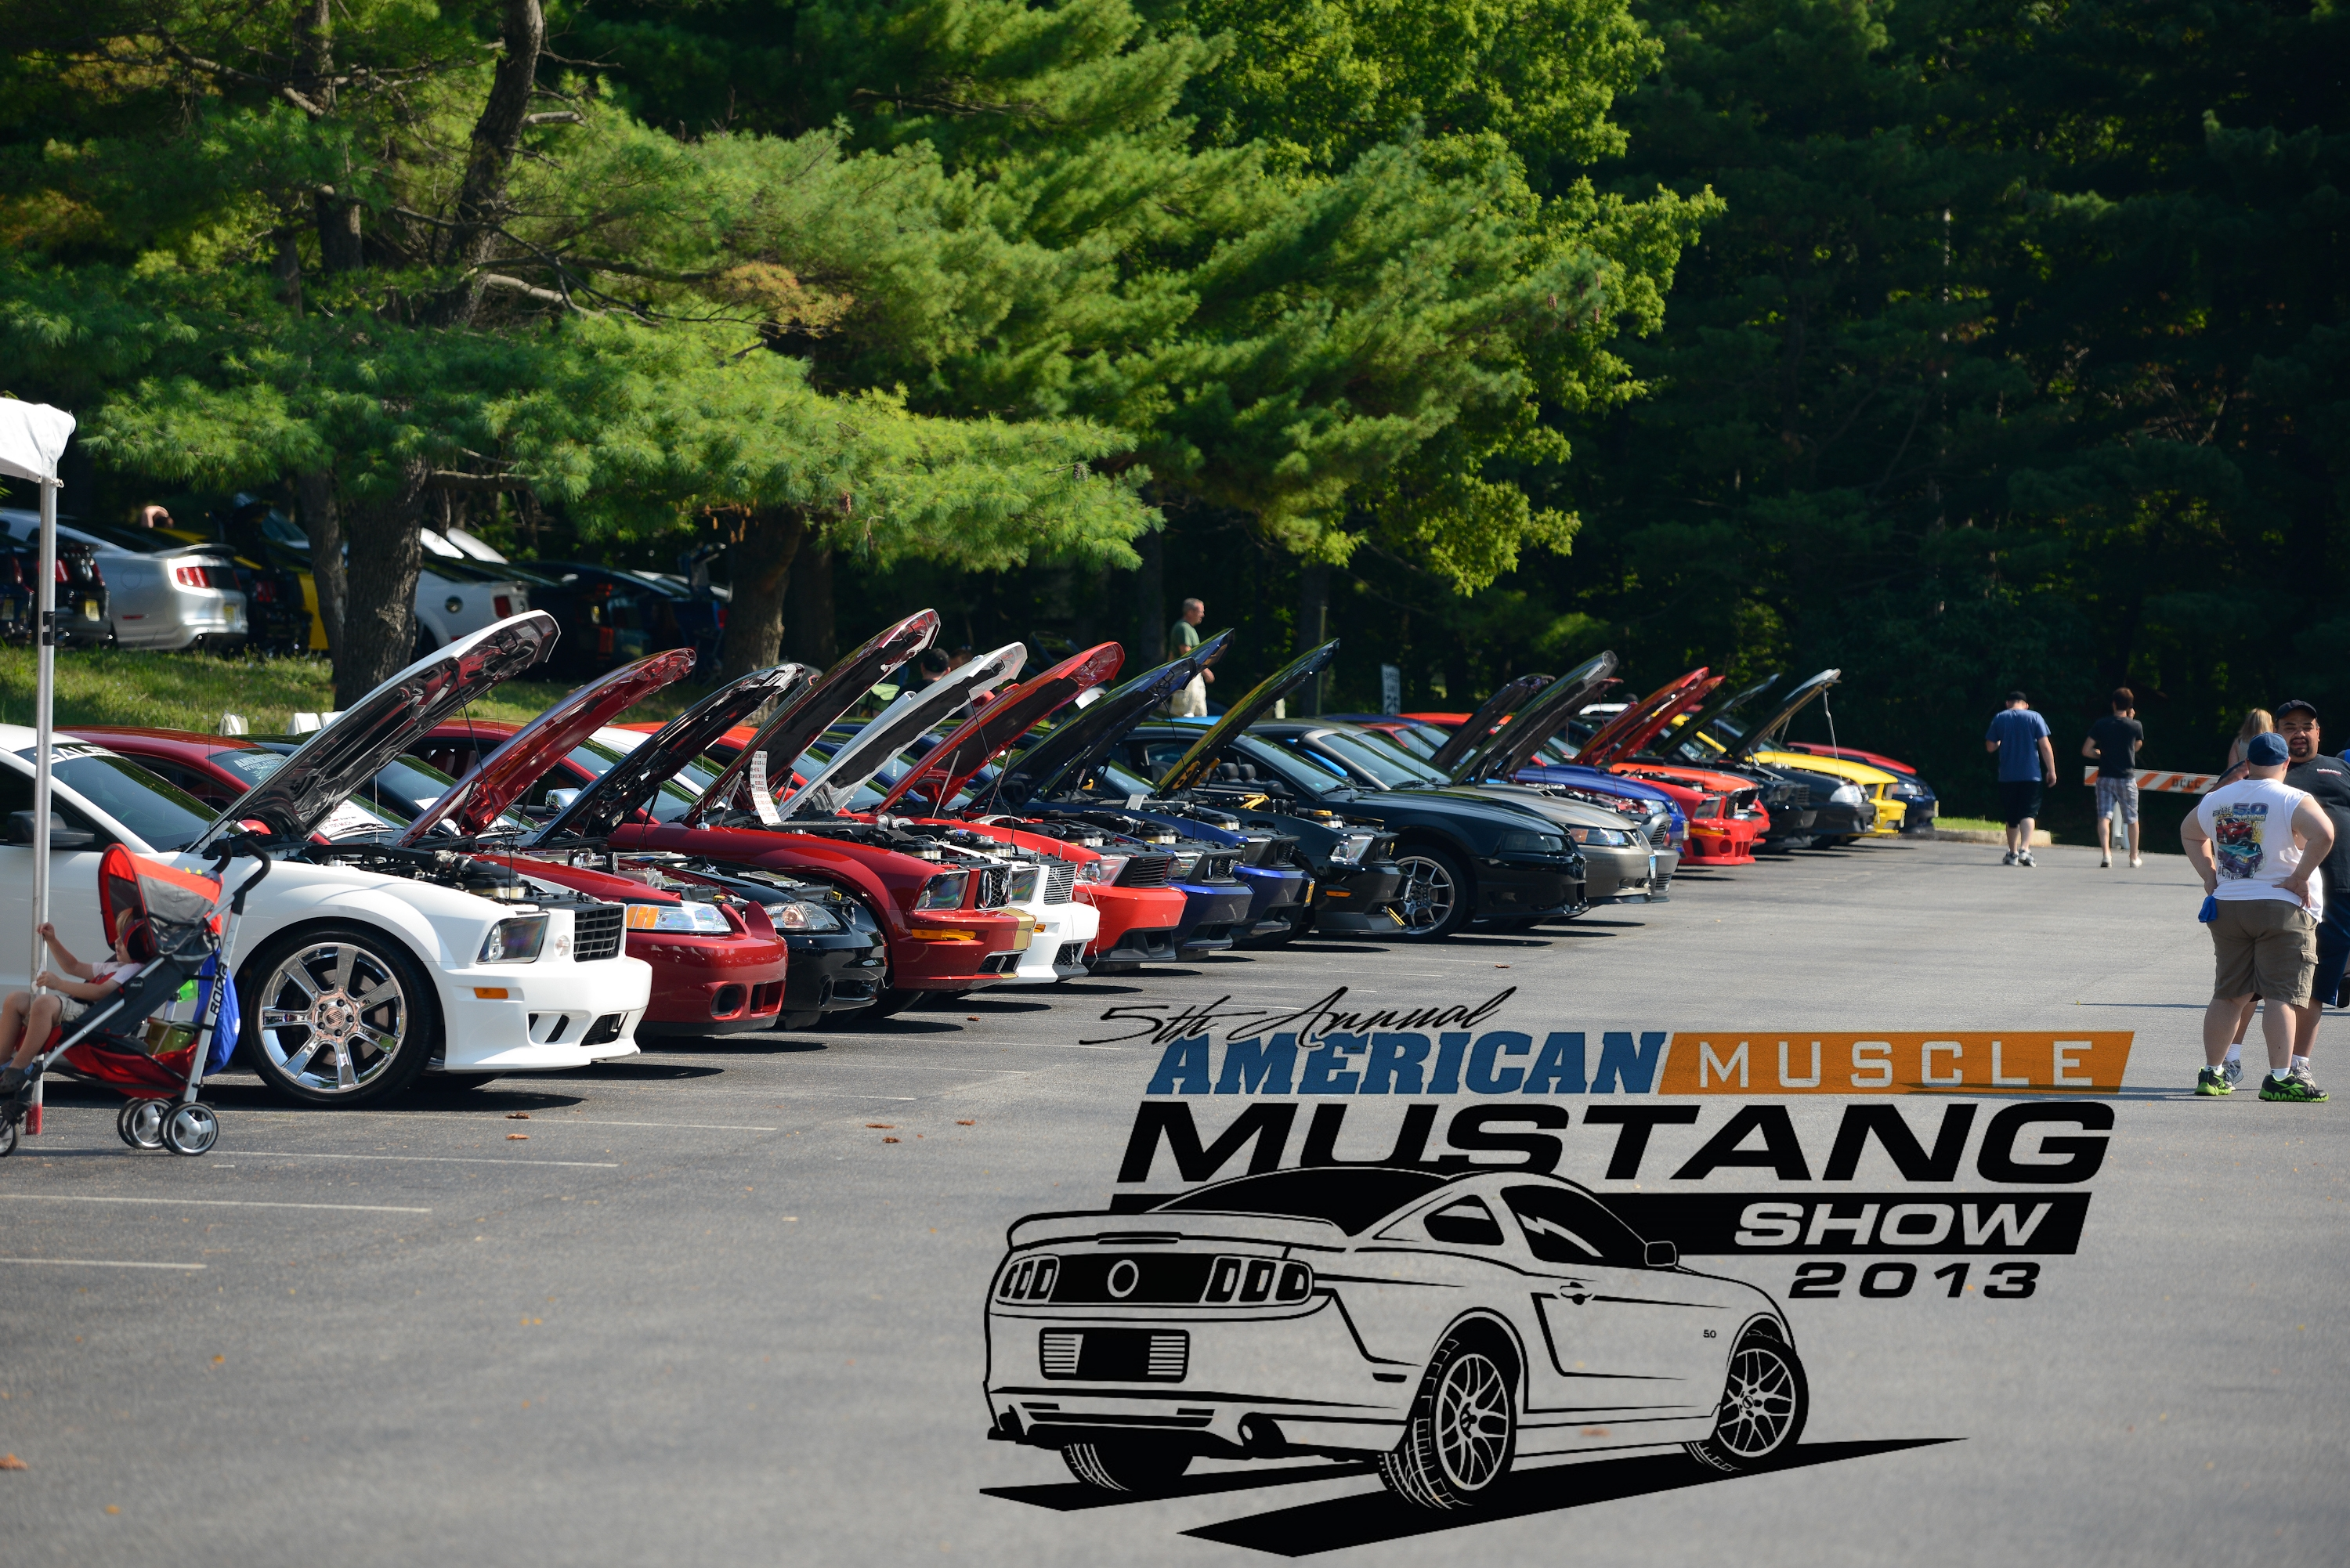 Get Ready The AmericanMuscle Car Show Is Almost Here - American muscle car show